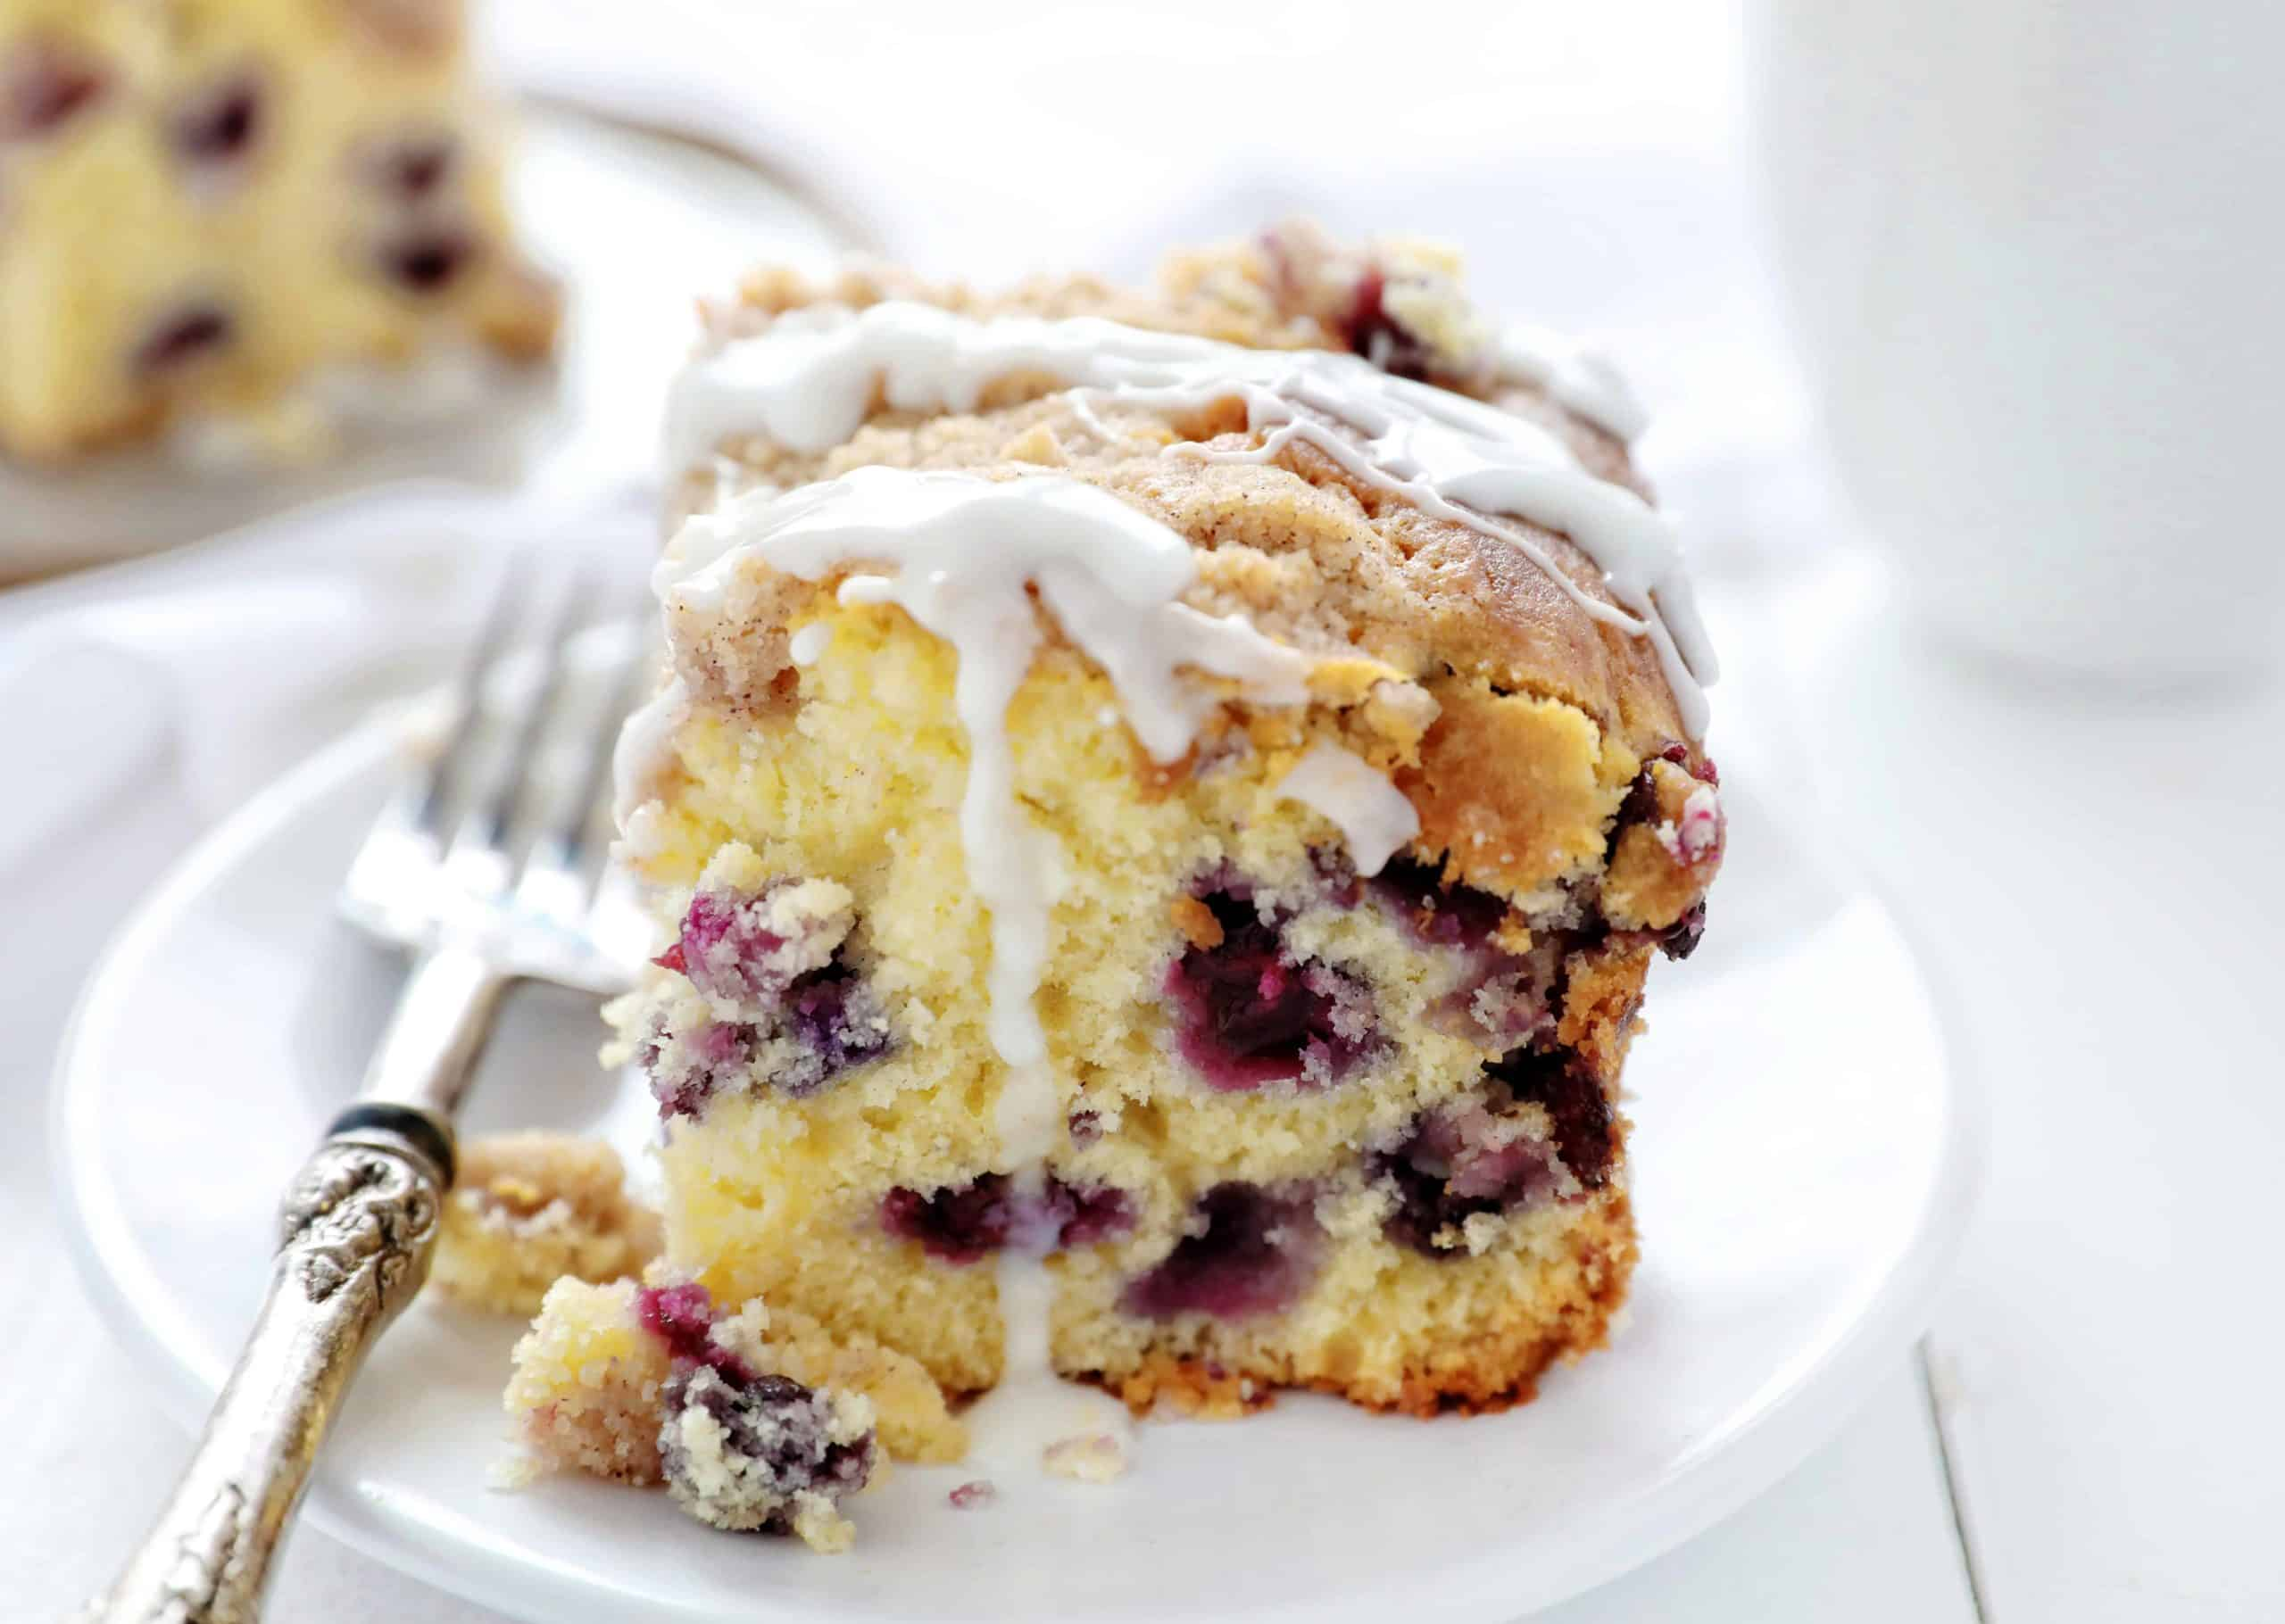 Blueberry Breakfast Cake or Coffee Cake on White Plate with Fork